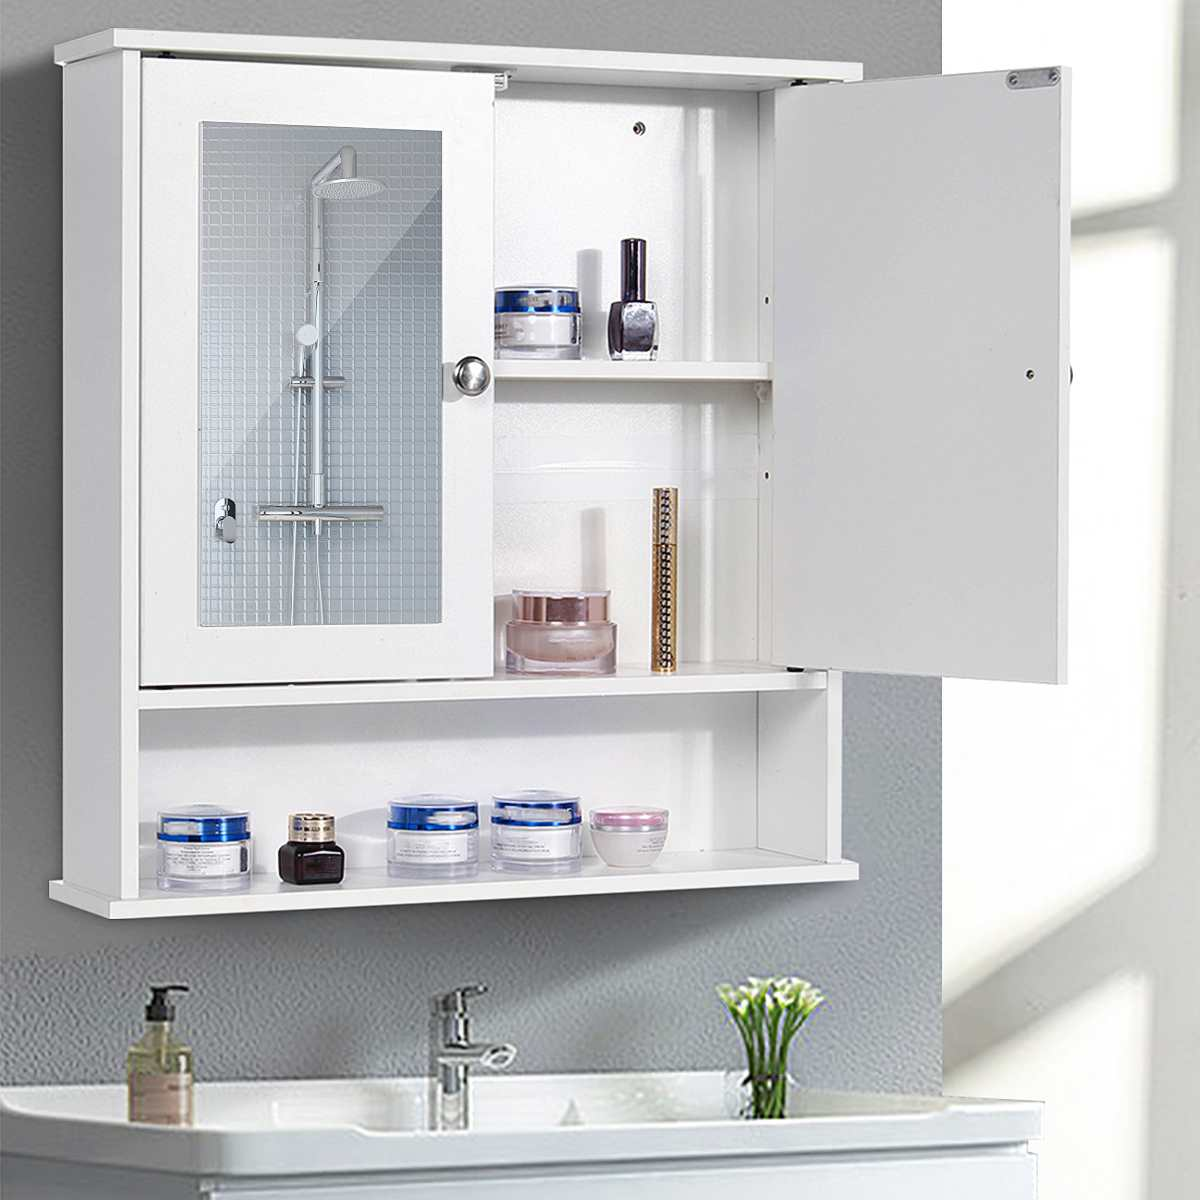 Bathroom Cabinet 58x56x13cm Wall Mounted Bathroom Toilet Furniture Cabinet Wood-Plastic Cupboard Shelf Cosmetic Storage Rack